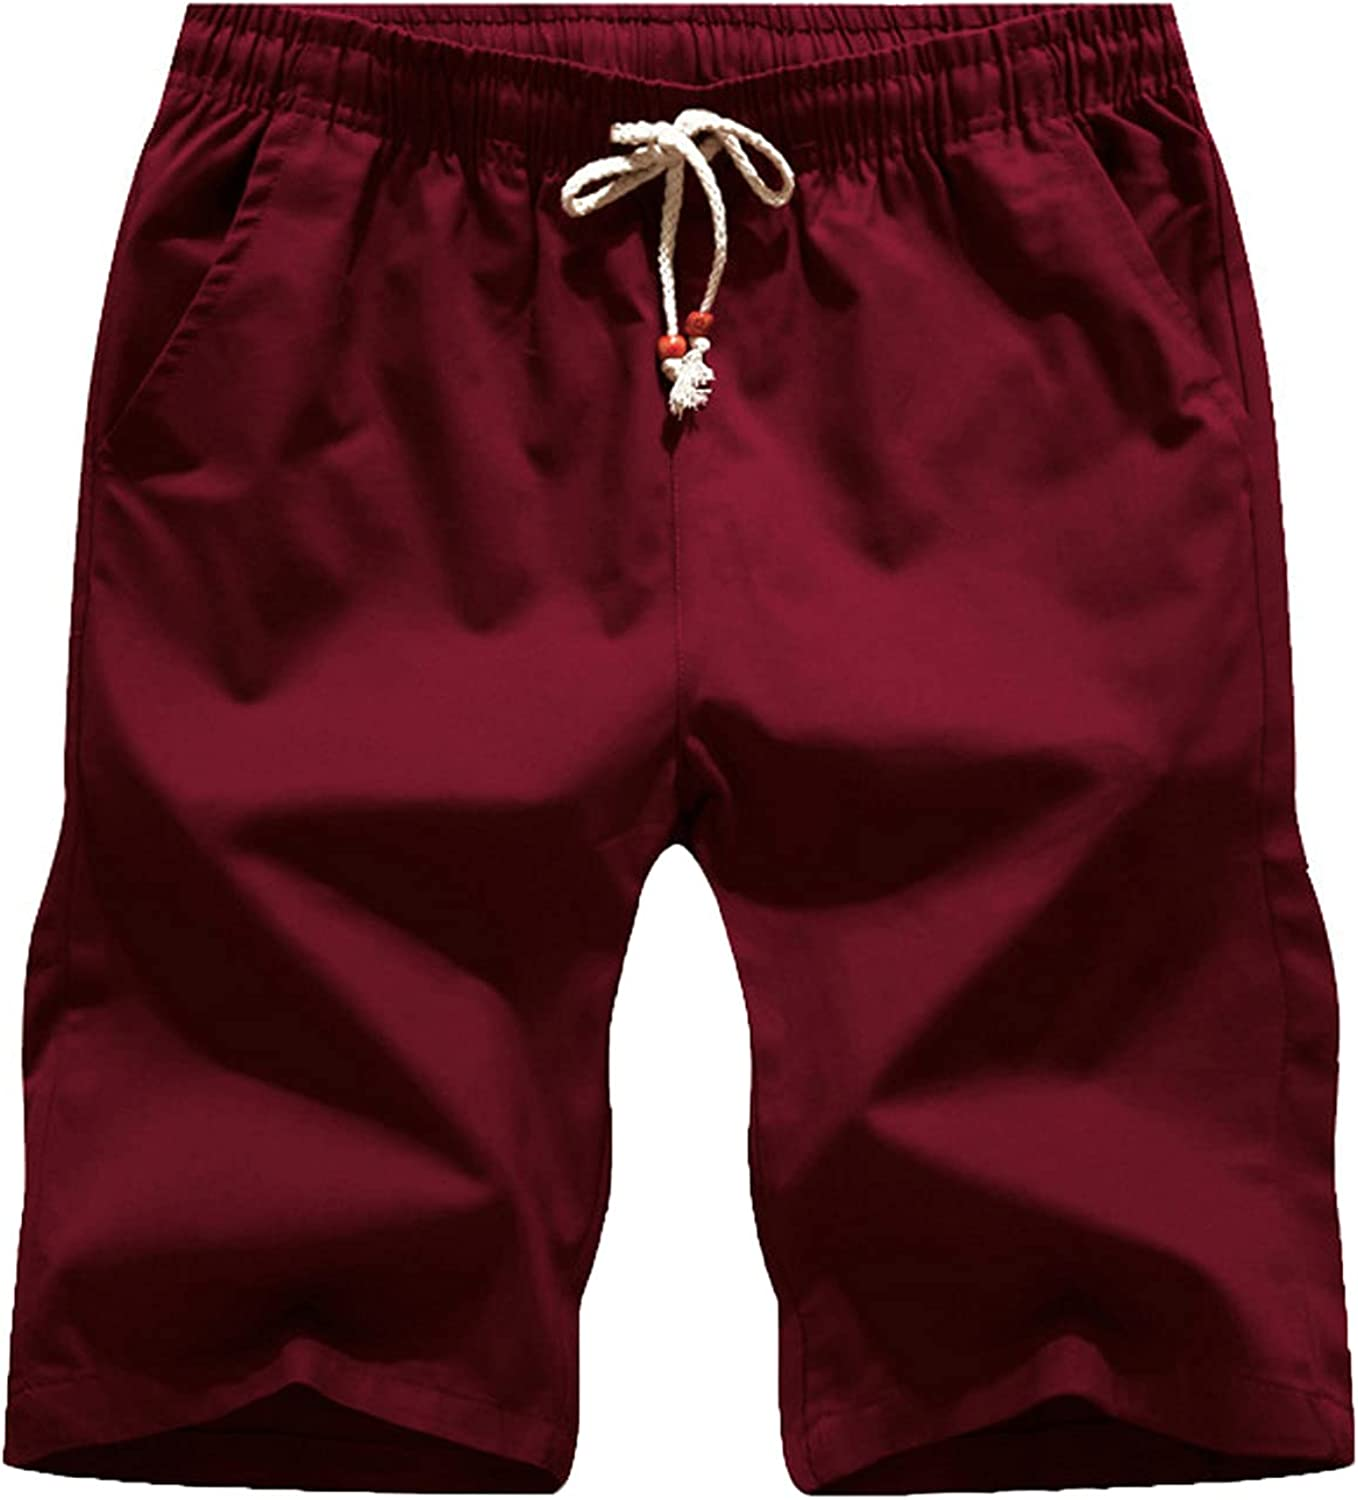 Shorts for Mens Cargo Relaxed Fit Stretch Sports Quick Dry Lightweight Running Jogger Zipper with Pockets